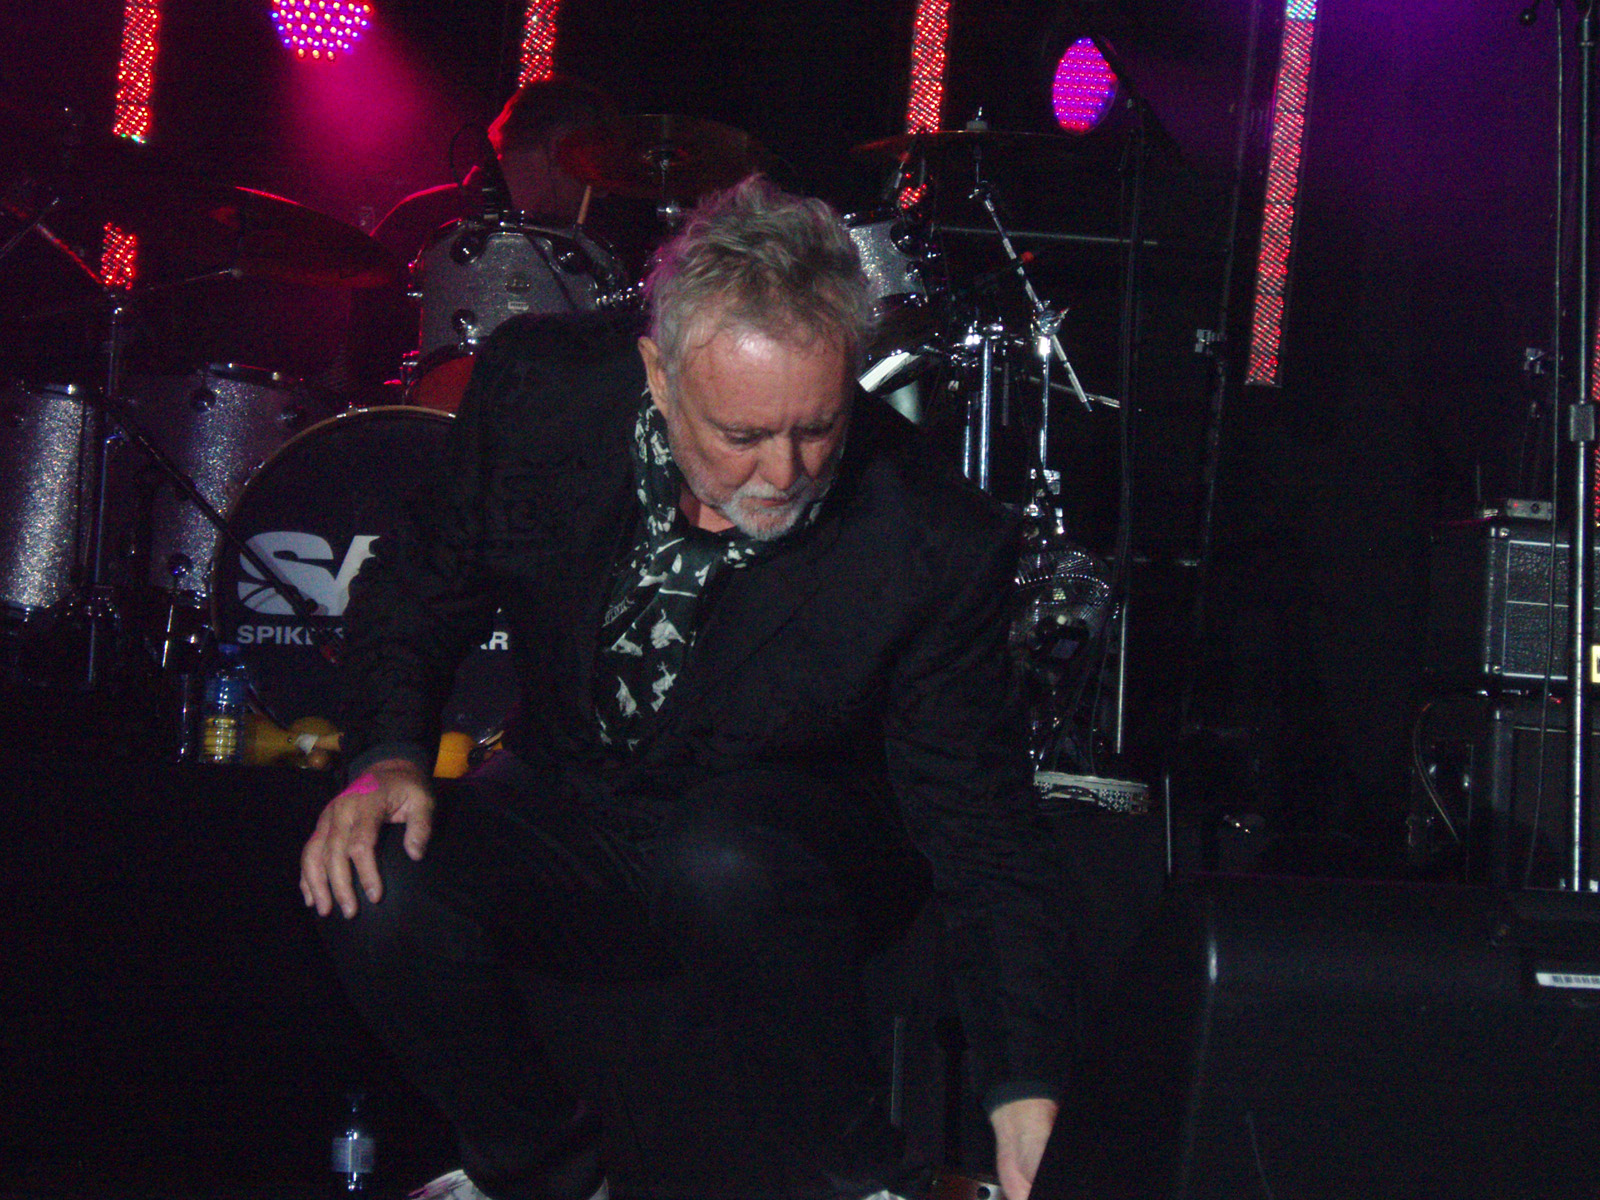 Live photo: 25.05.2013 - Roger Taylor live at the The Kings Arms, All